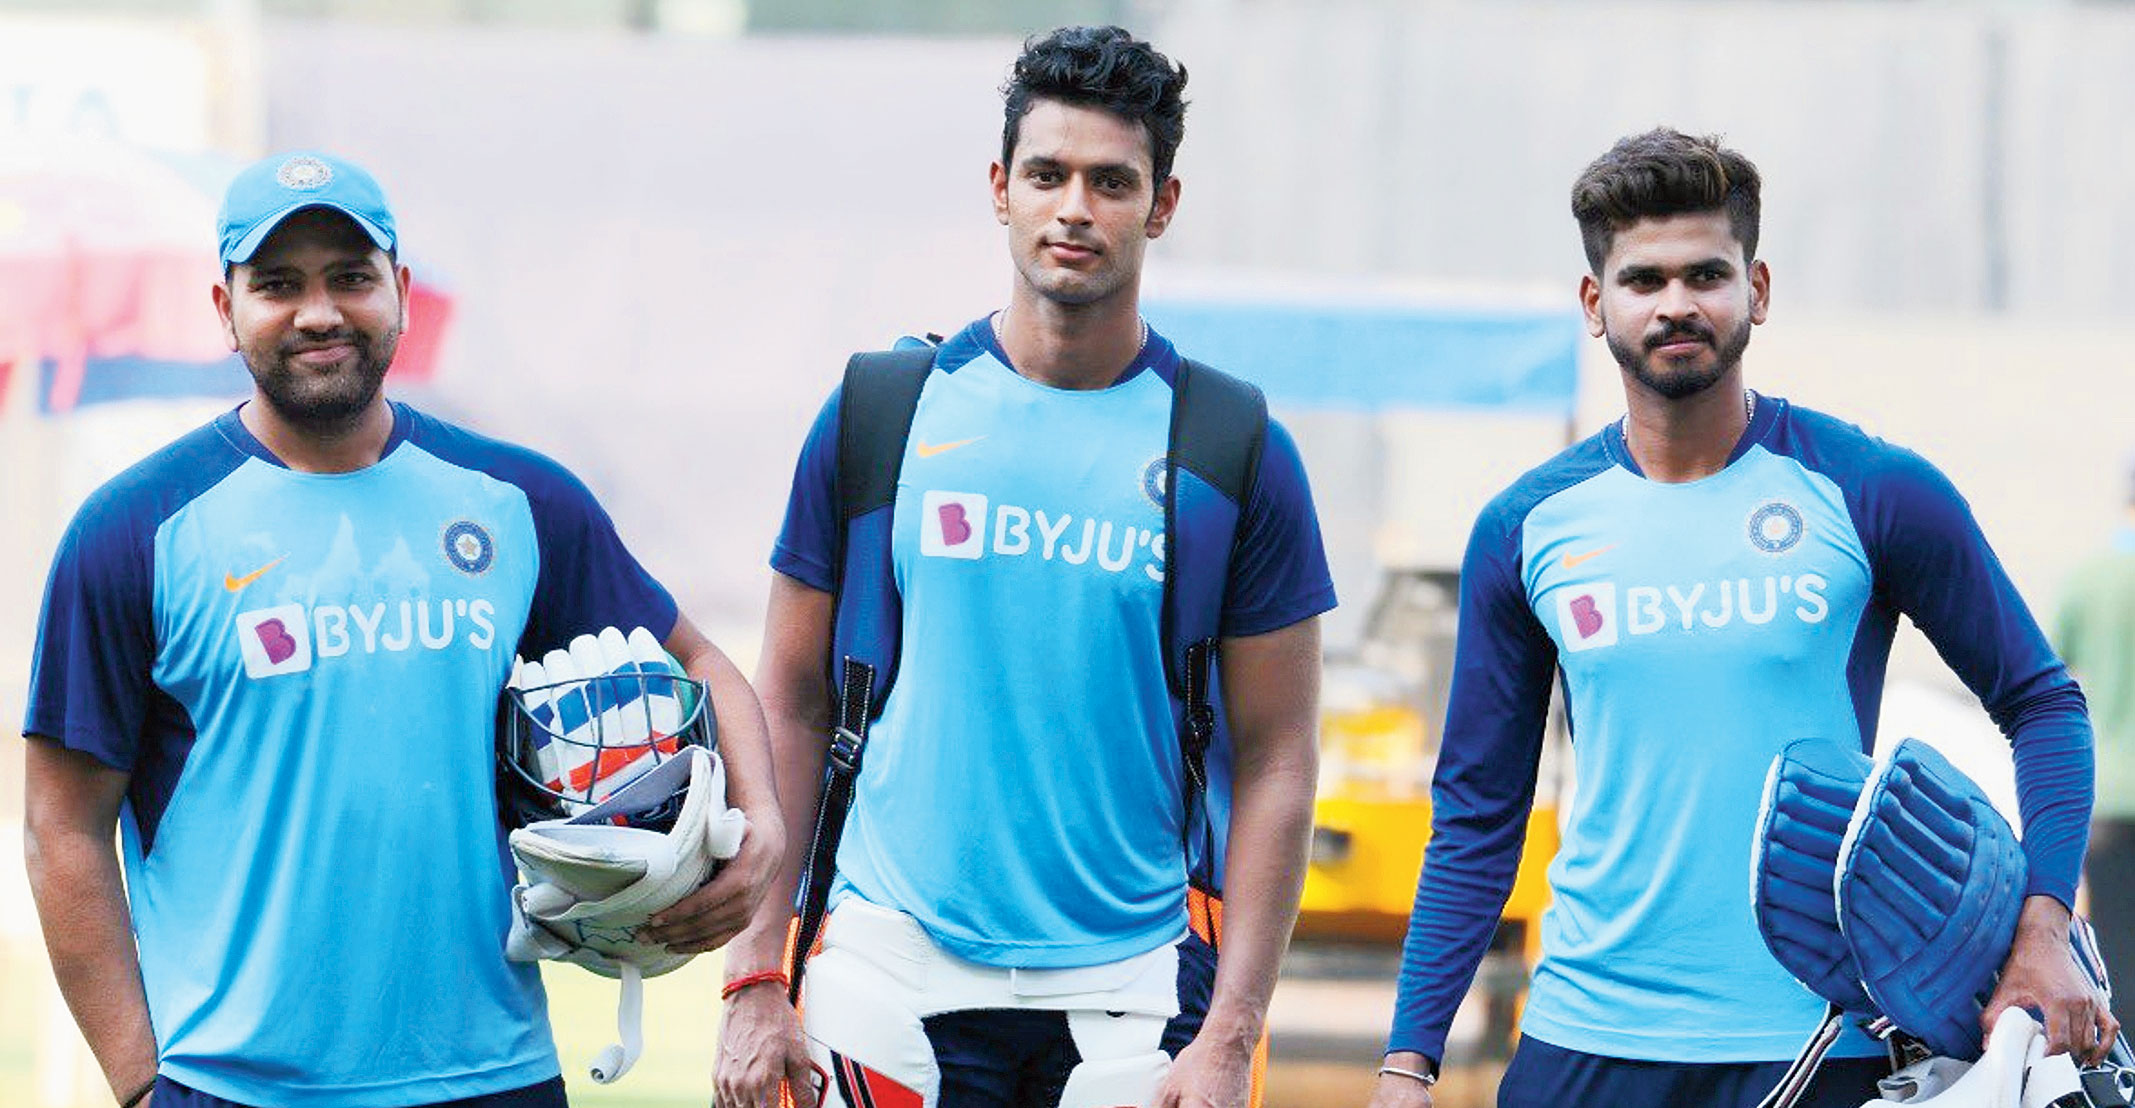 Mumbai boys (from left) Rohit Sharma, Shivam Dube and Shreyas Iyer during training at the Wankhede in Mumbai on Tuesday.